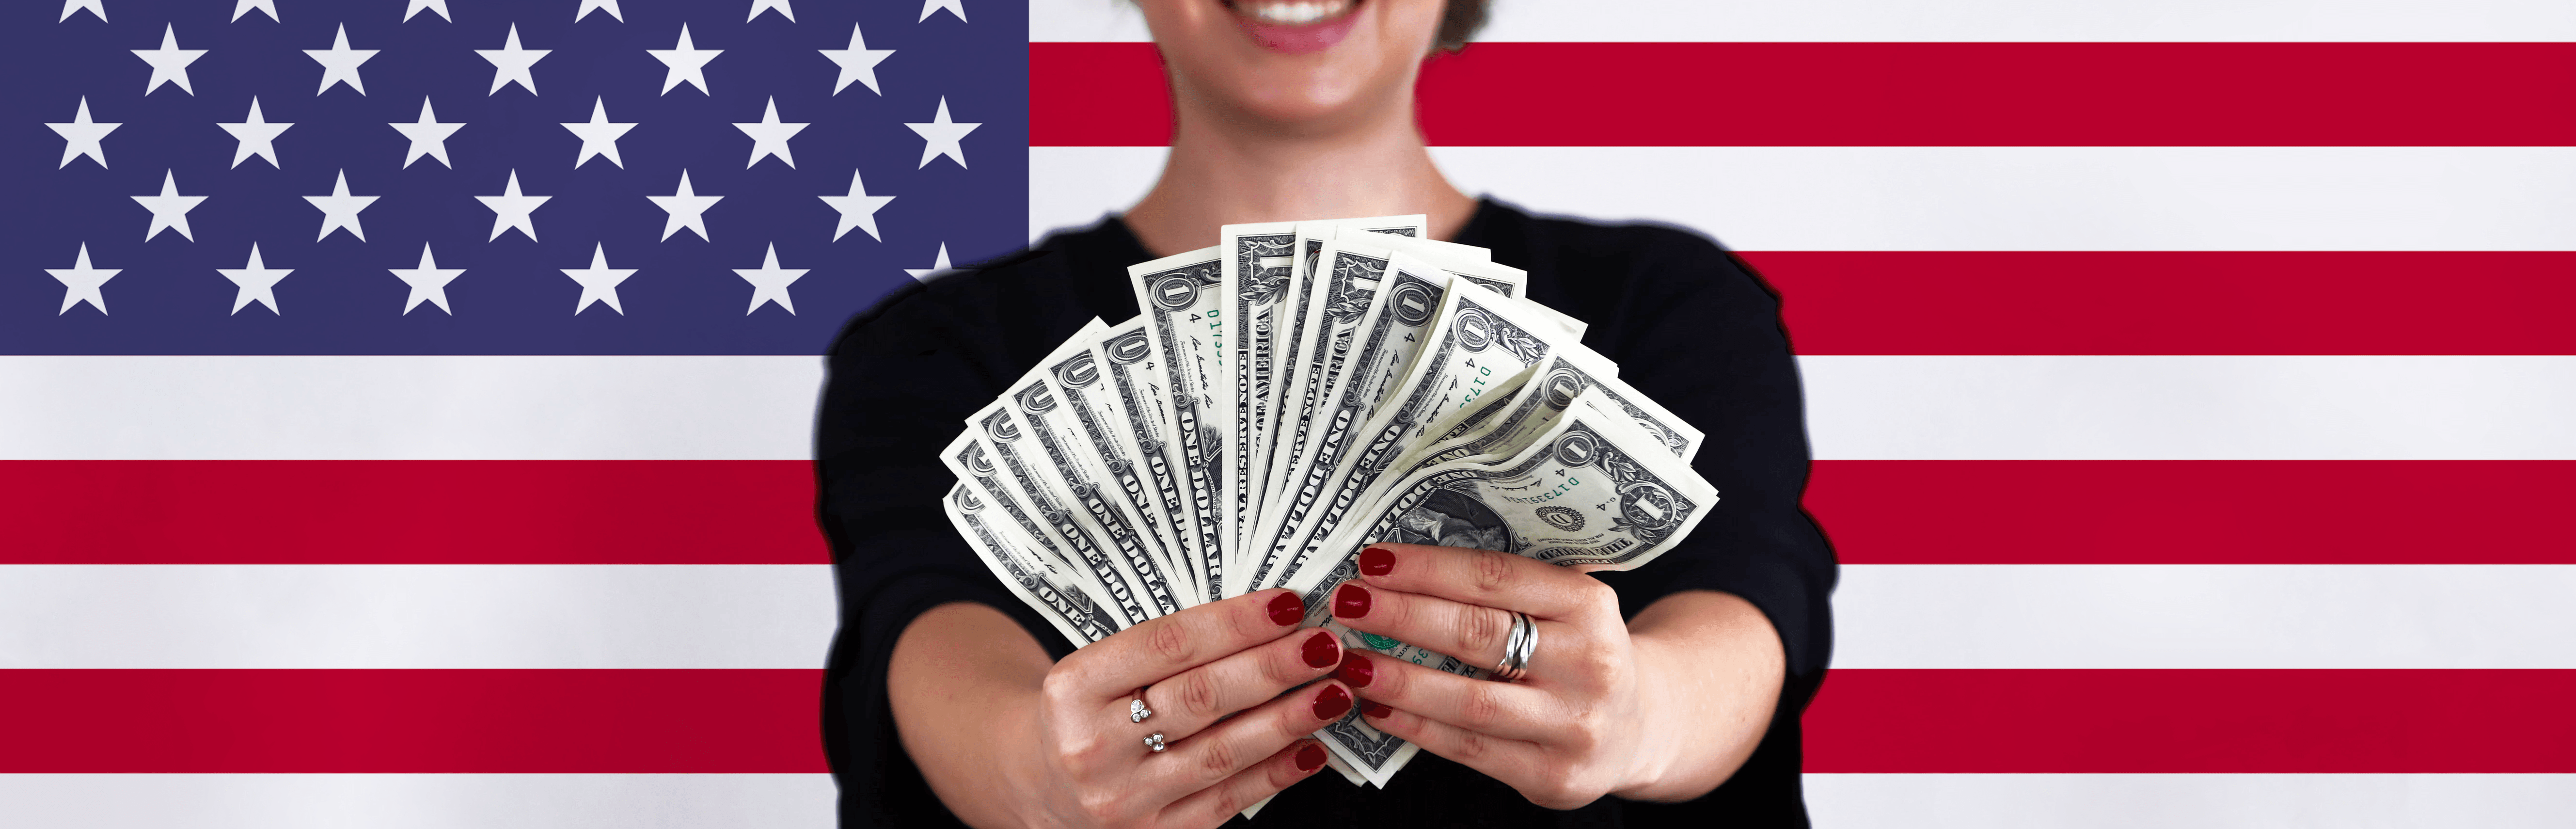 350+ Student Discounts: The Ultimate US List